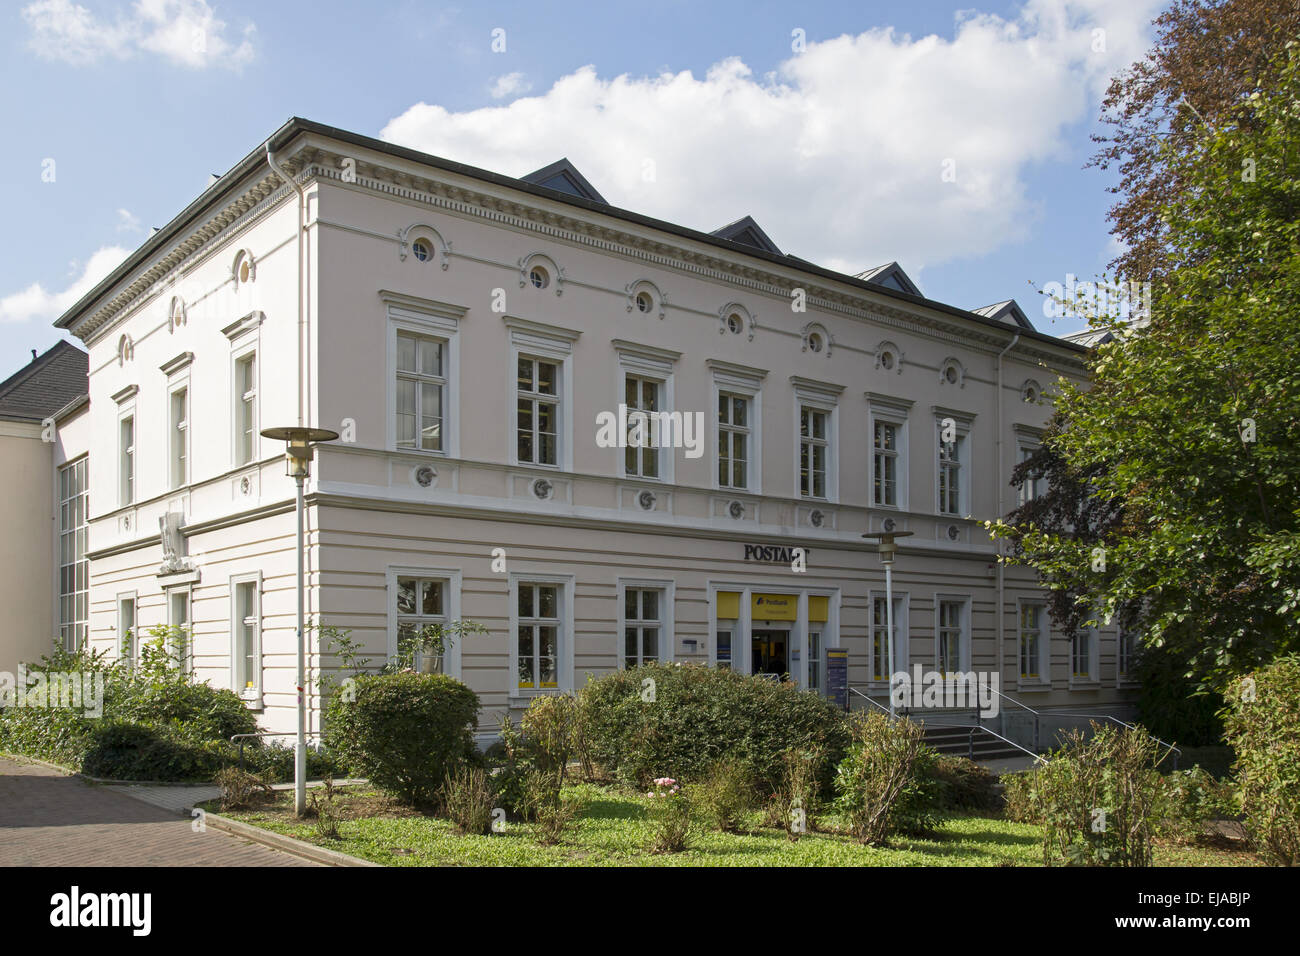 Old main postoffice in Unna, Germany - Stock Image